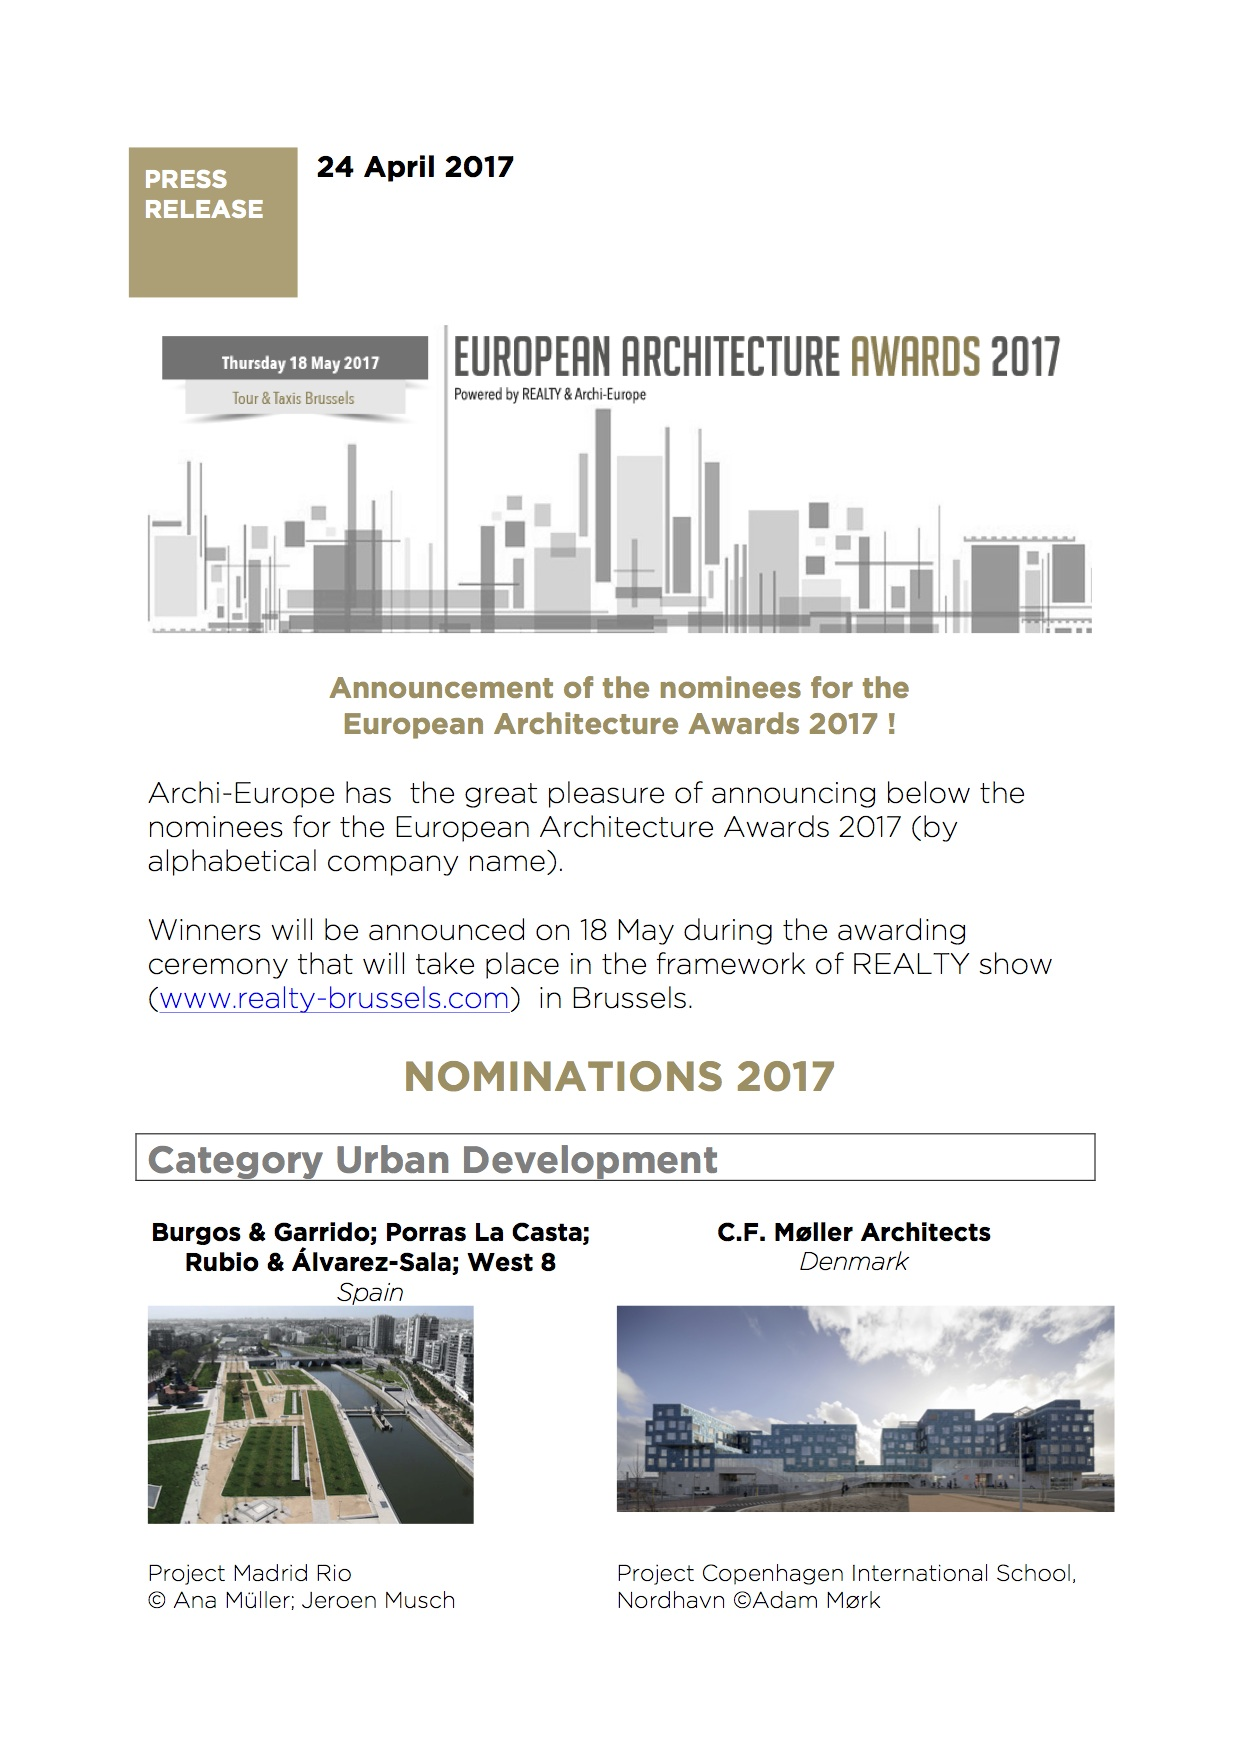 PR European Architecture Awards2017 nominees